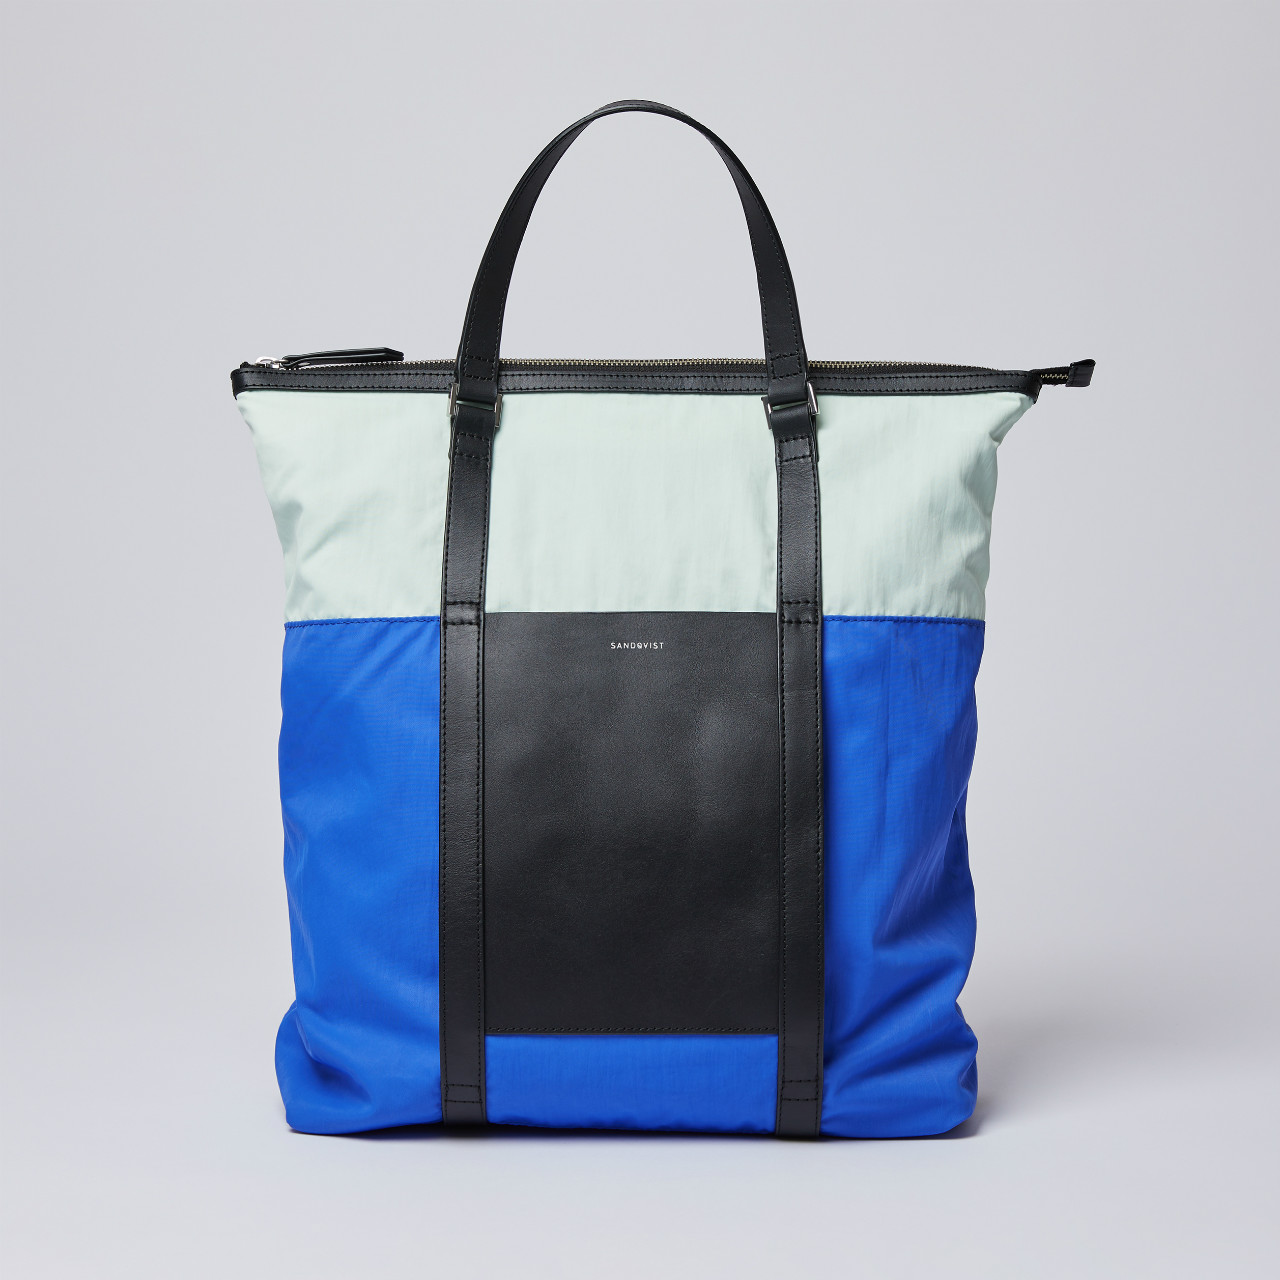 サムネイル:SANDQVIST サンドクヴィスト MARTA Multi color Blue/Green/Black leather